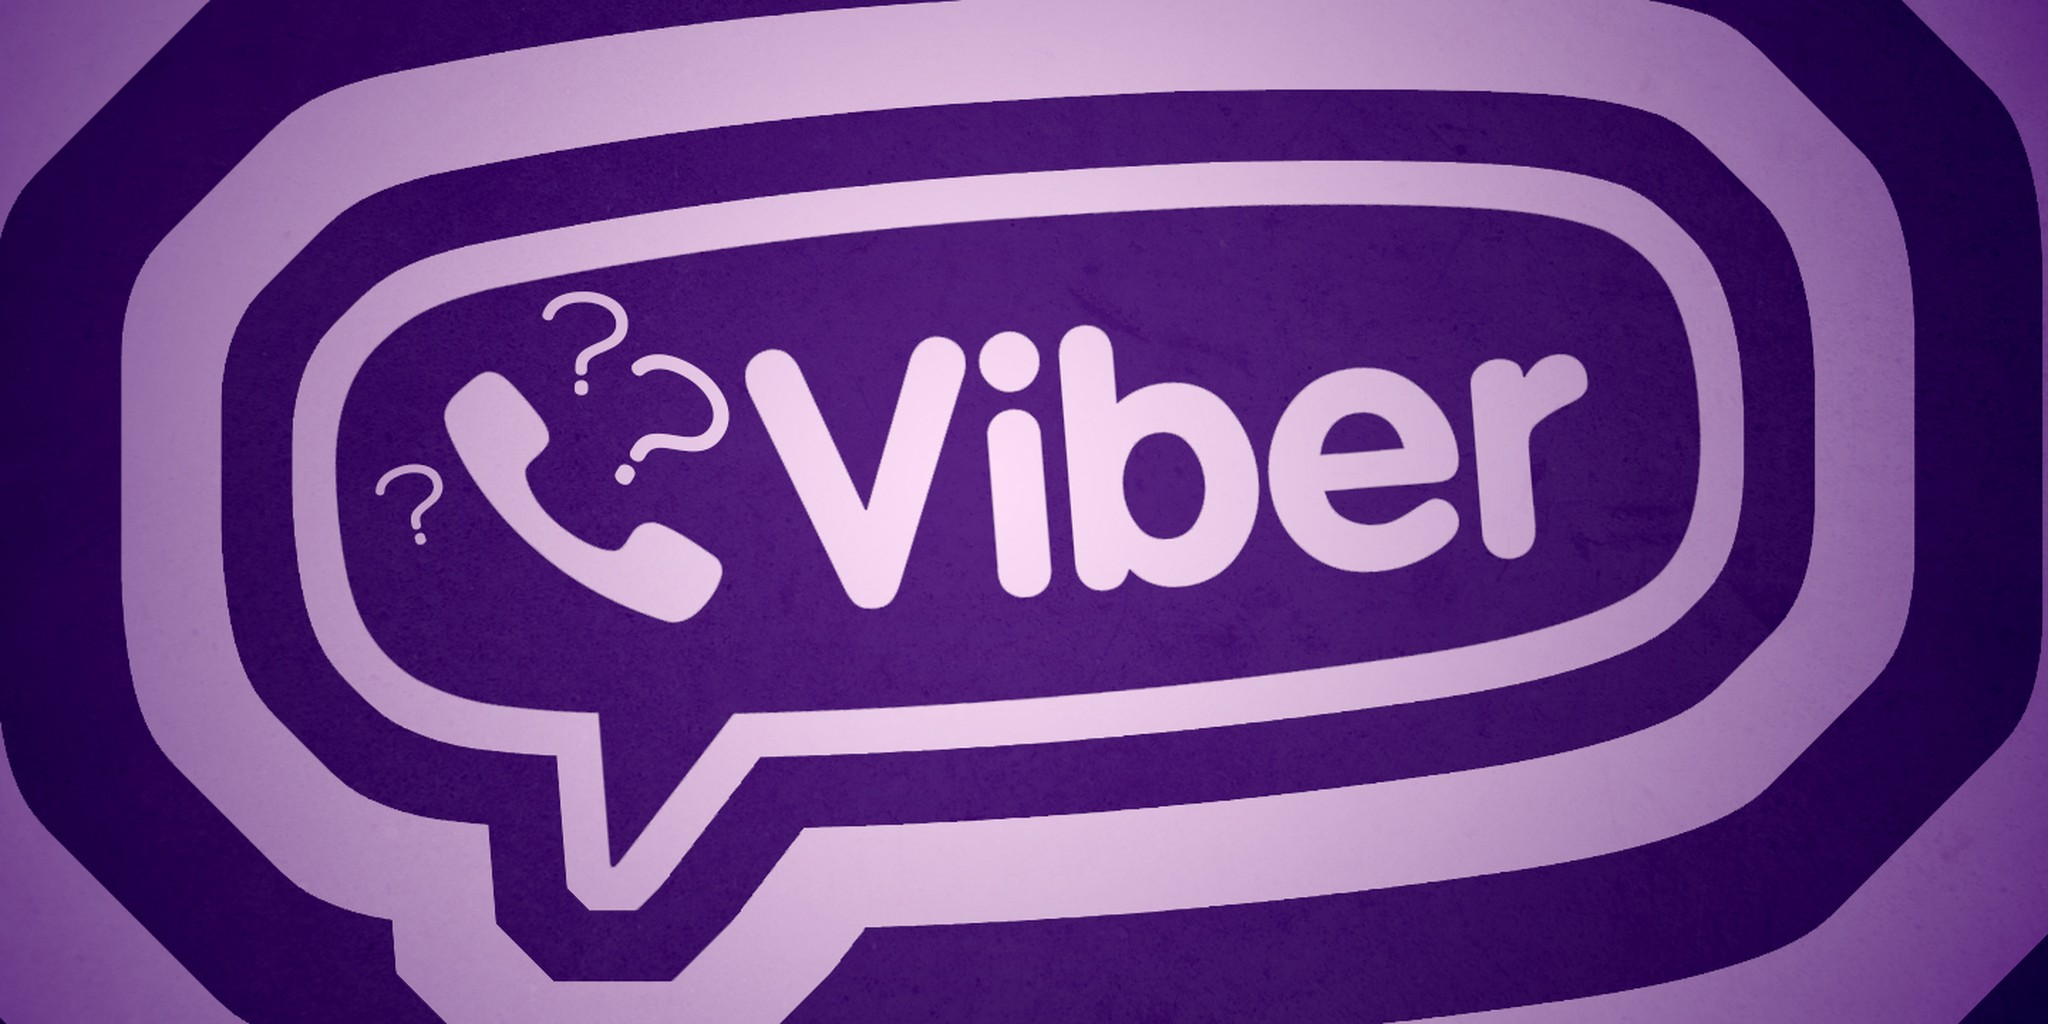 viber logo with question marks surrounding it